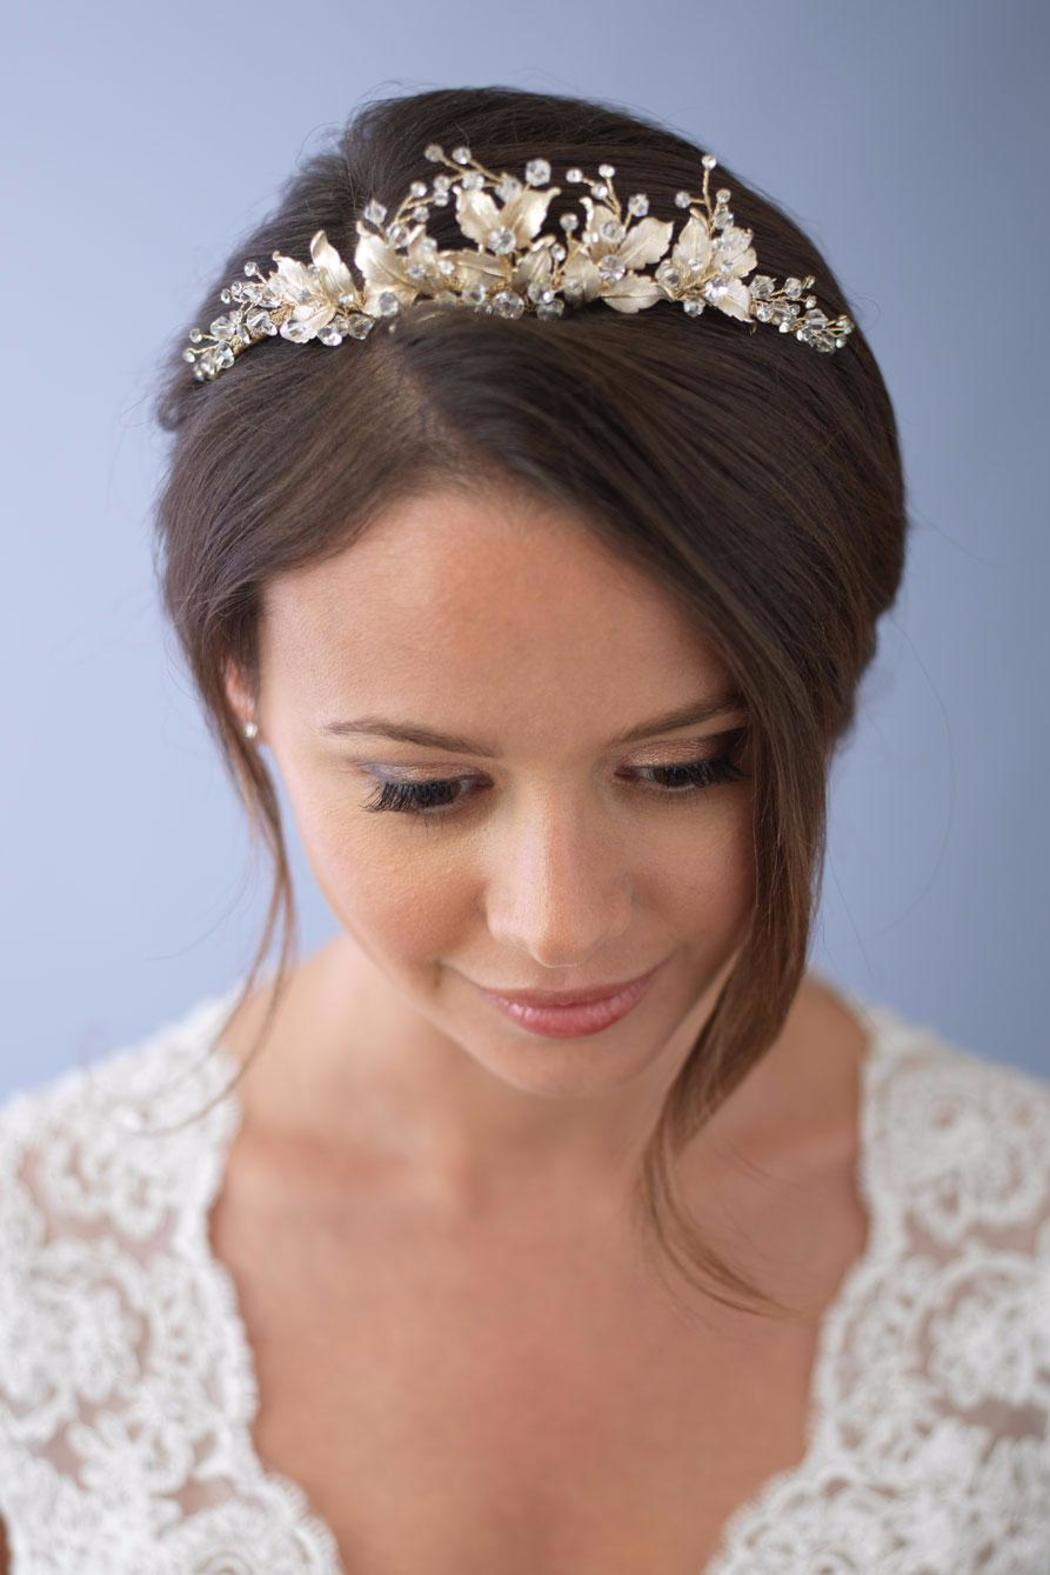 Dareth Colburn Collection Gold Flower Crown From Massachusetts